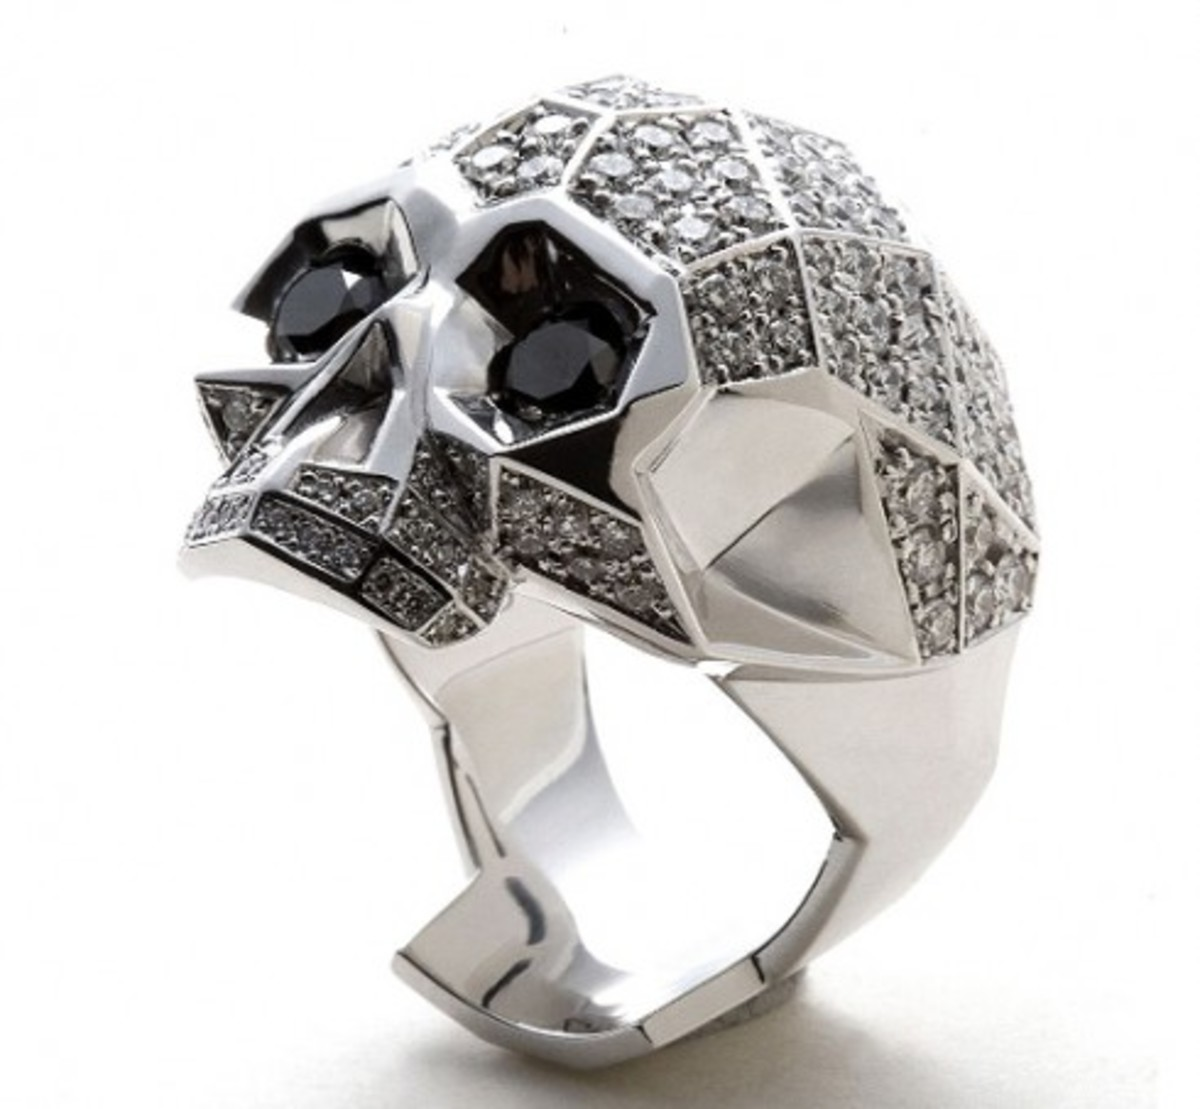 mastermind JAPAN x CORE JEWELS - metaphor Collection Skull Ring